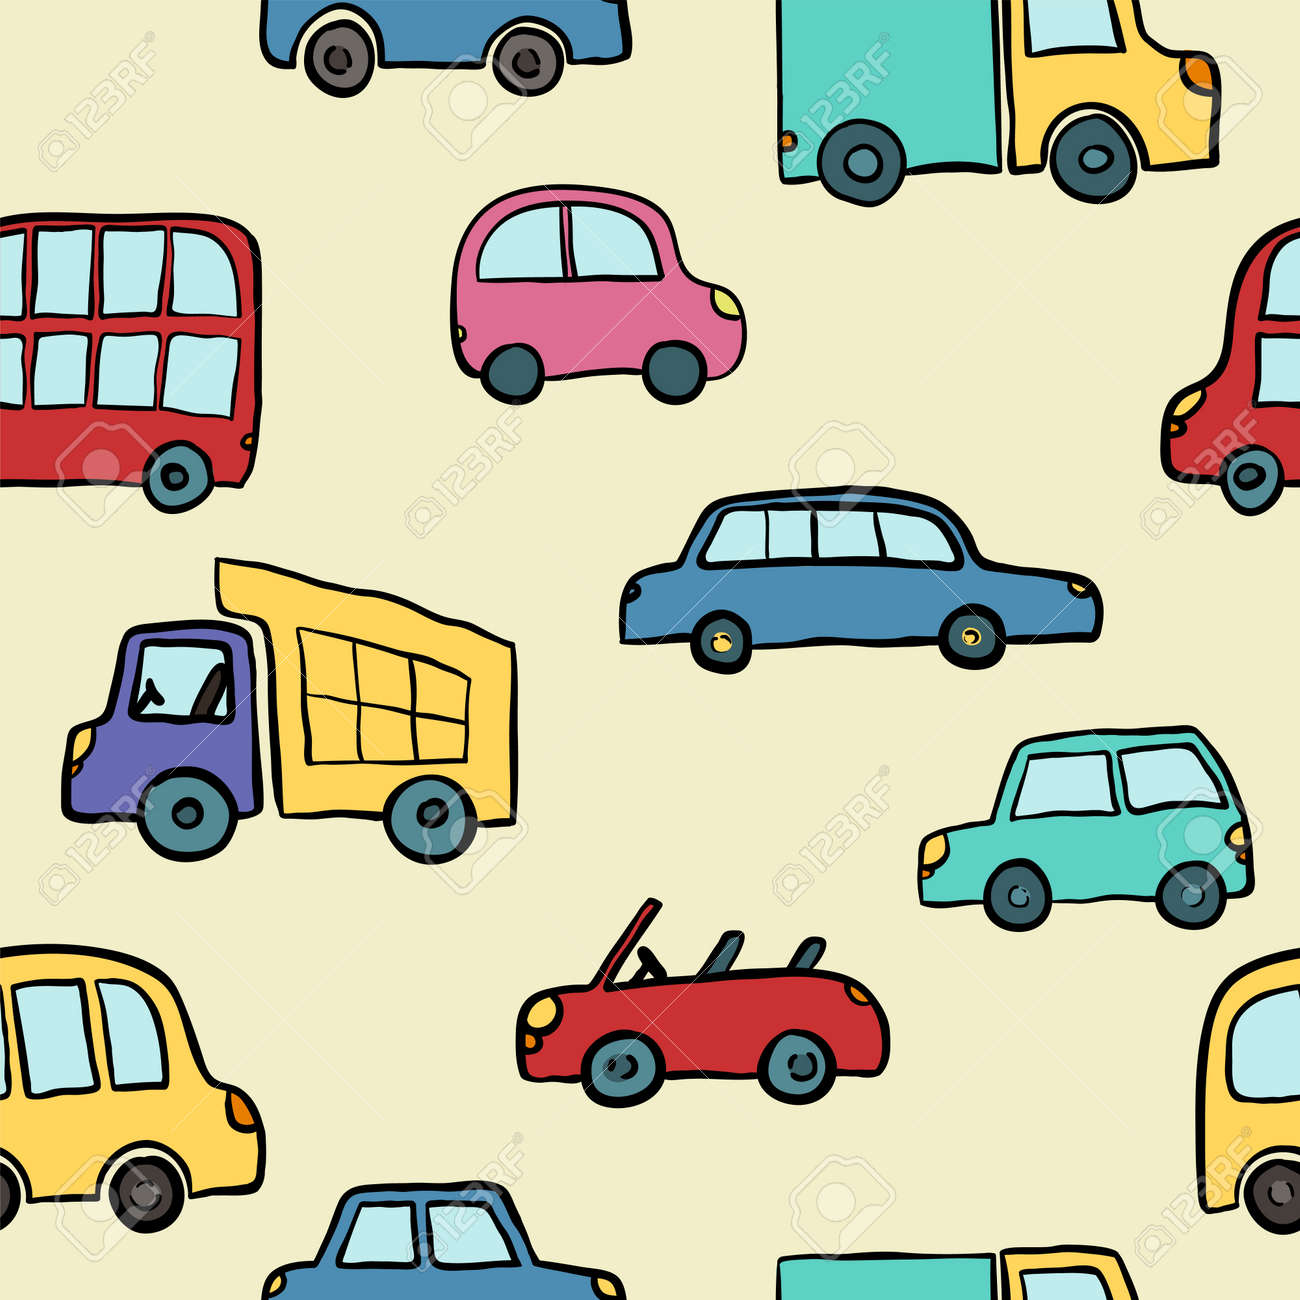 Seamless Pattern Of Hand Drawn Cute Cartoon Cars For Kids Design... Royalty  Free Cliparts, Vectors, And Stock Illustration. Image 105075885.